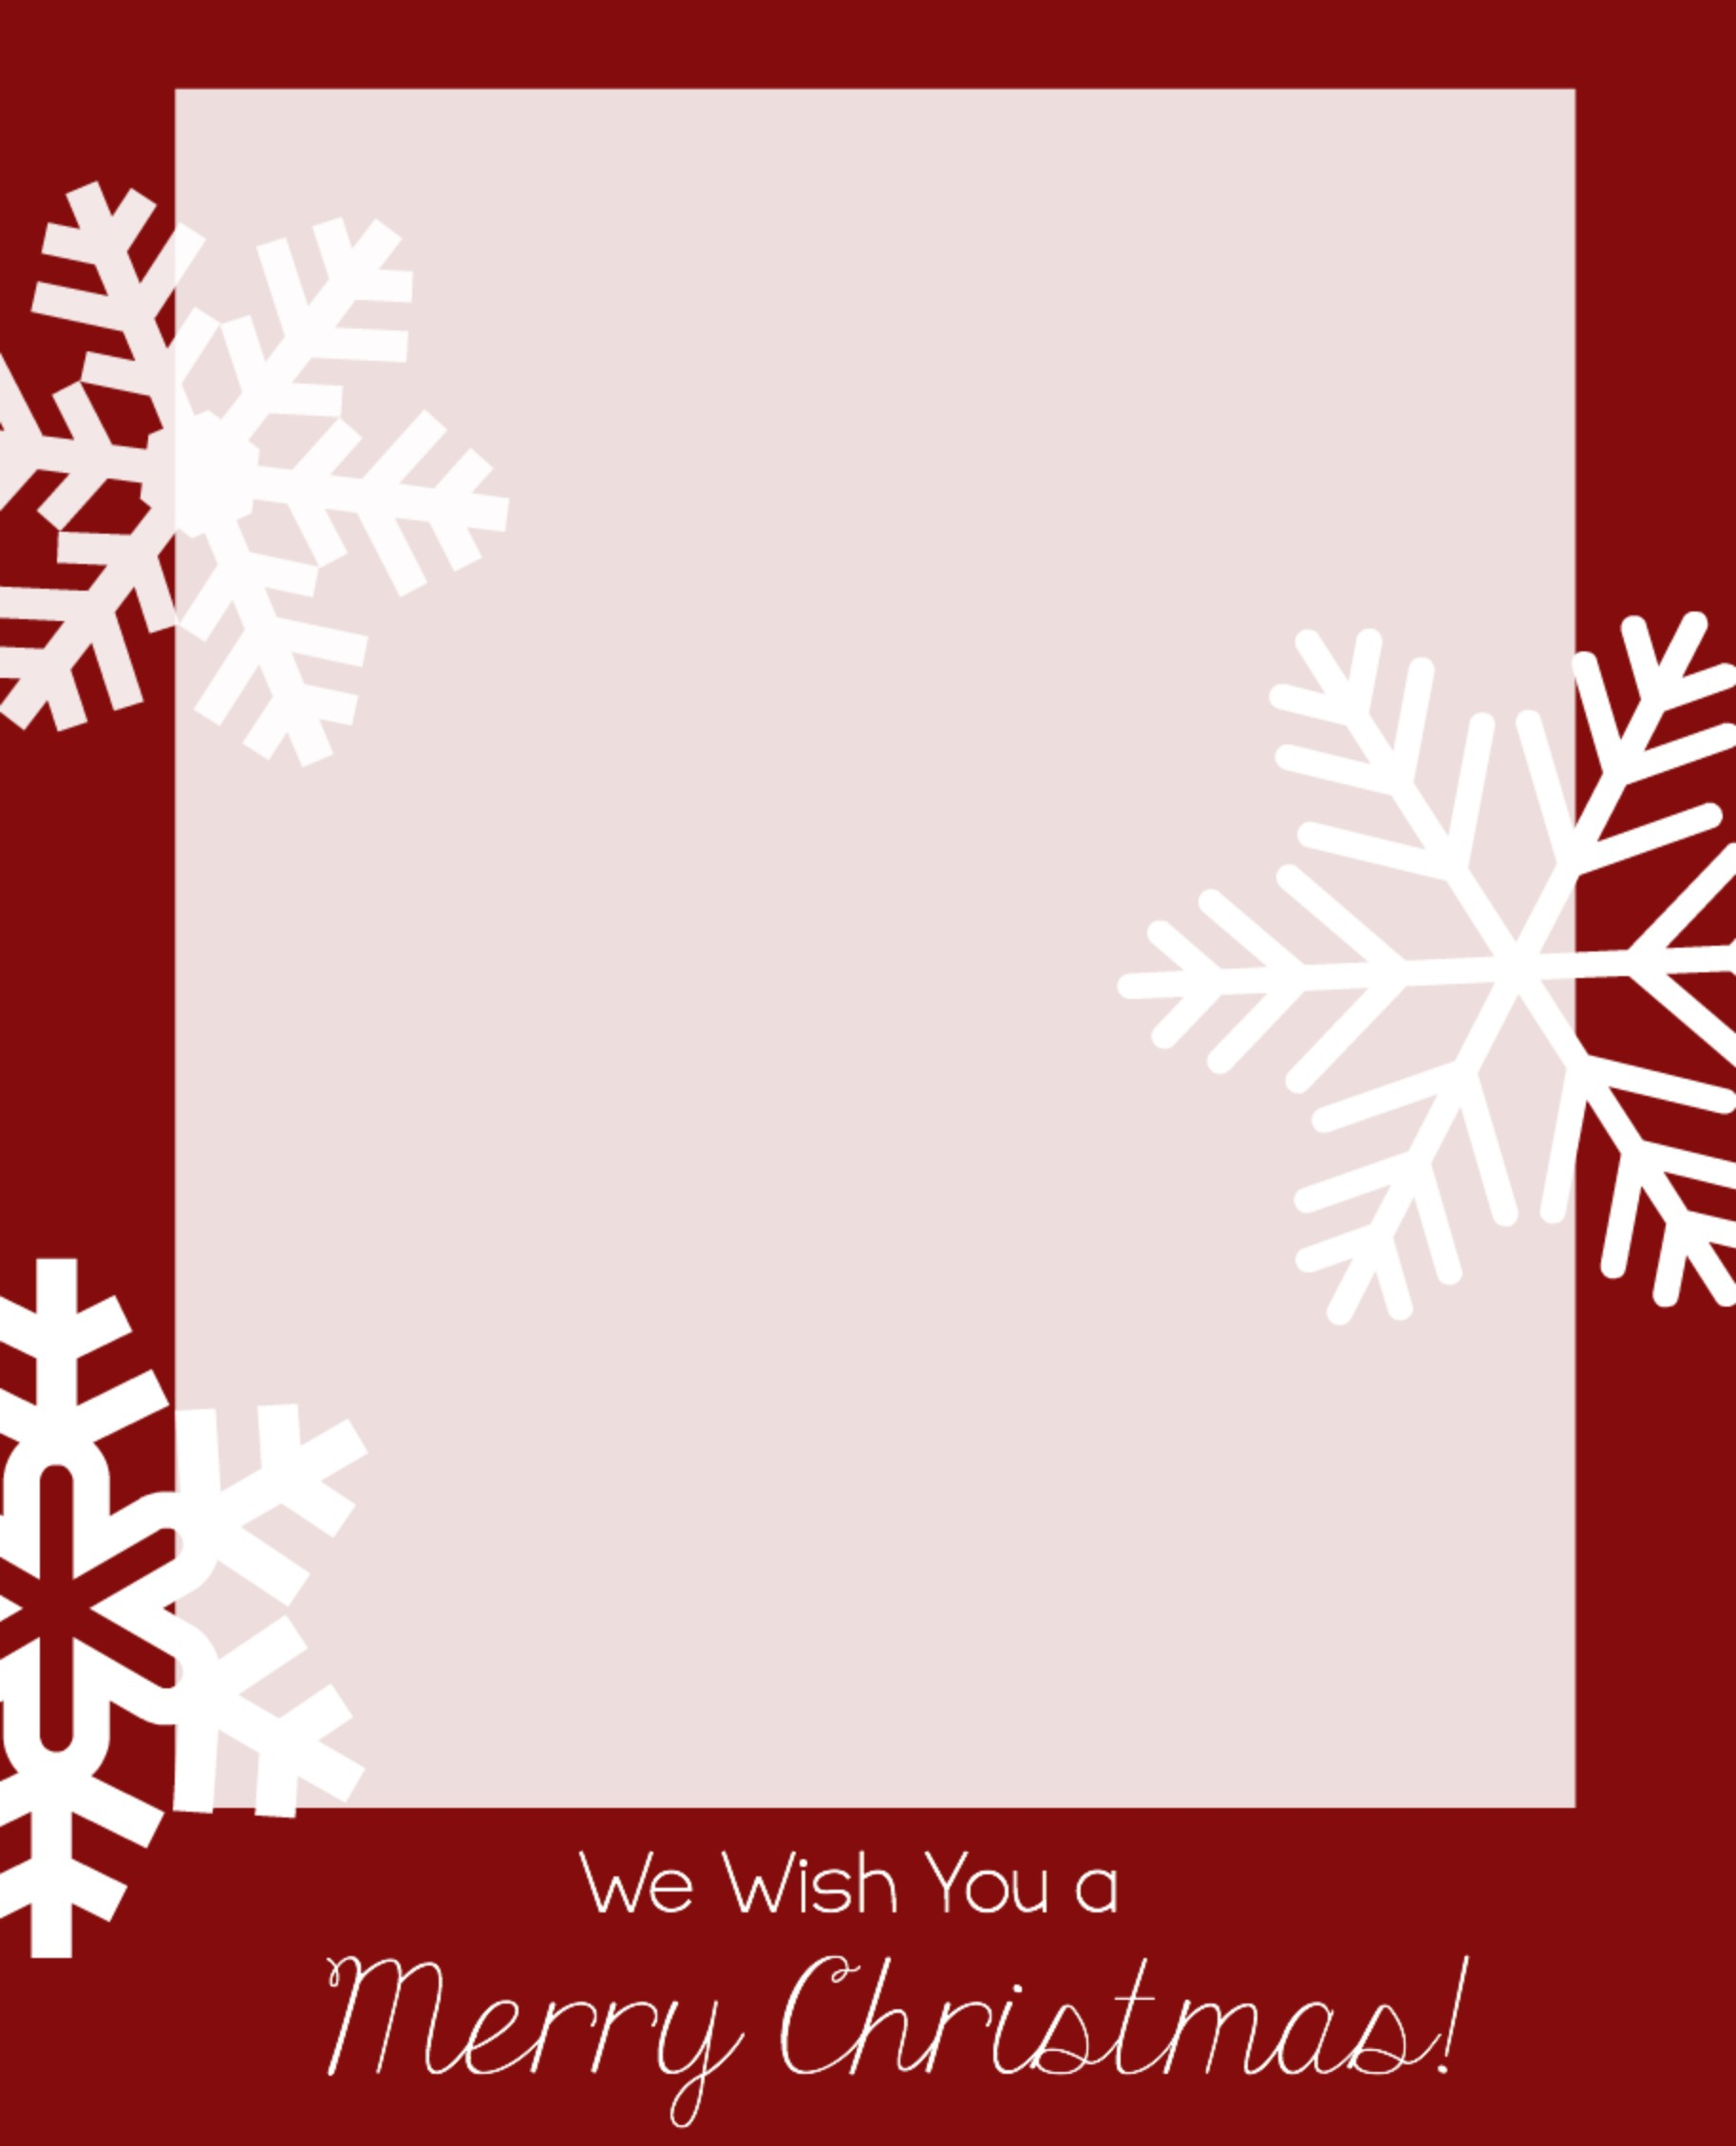 Free Christmas Card Templates - Crazy Little Projects - Free Printable Christmas Card Templates